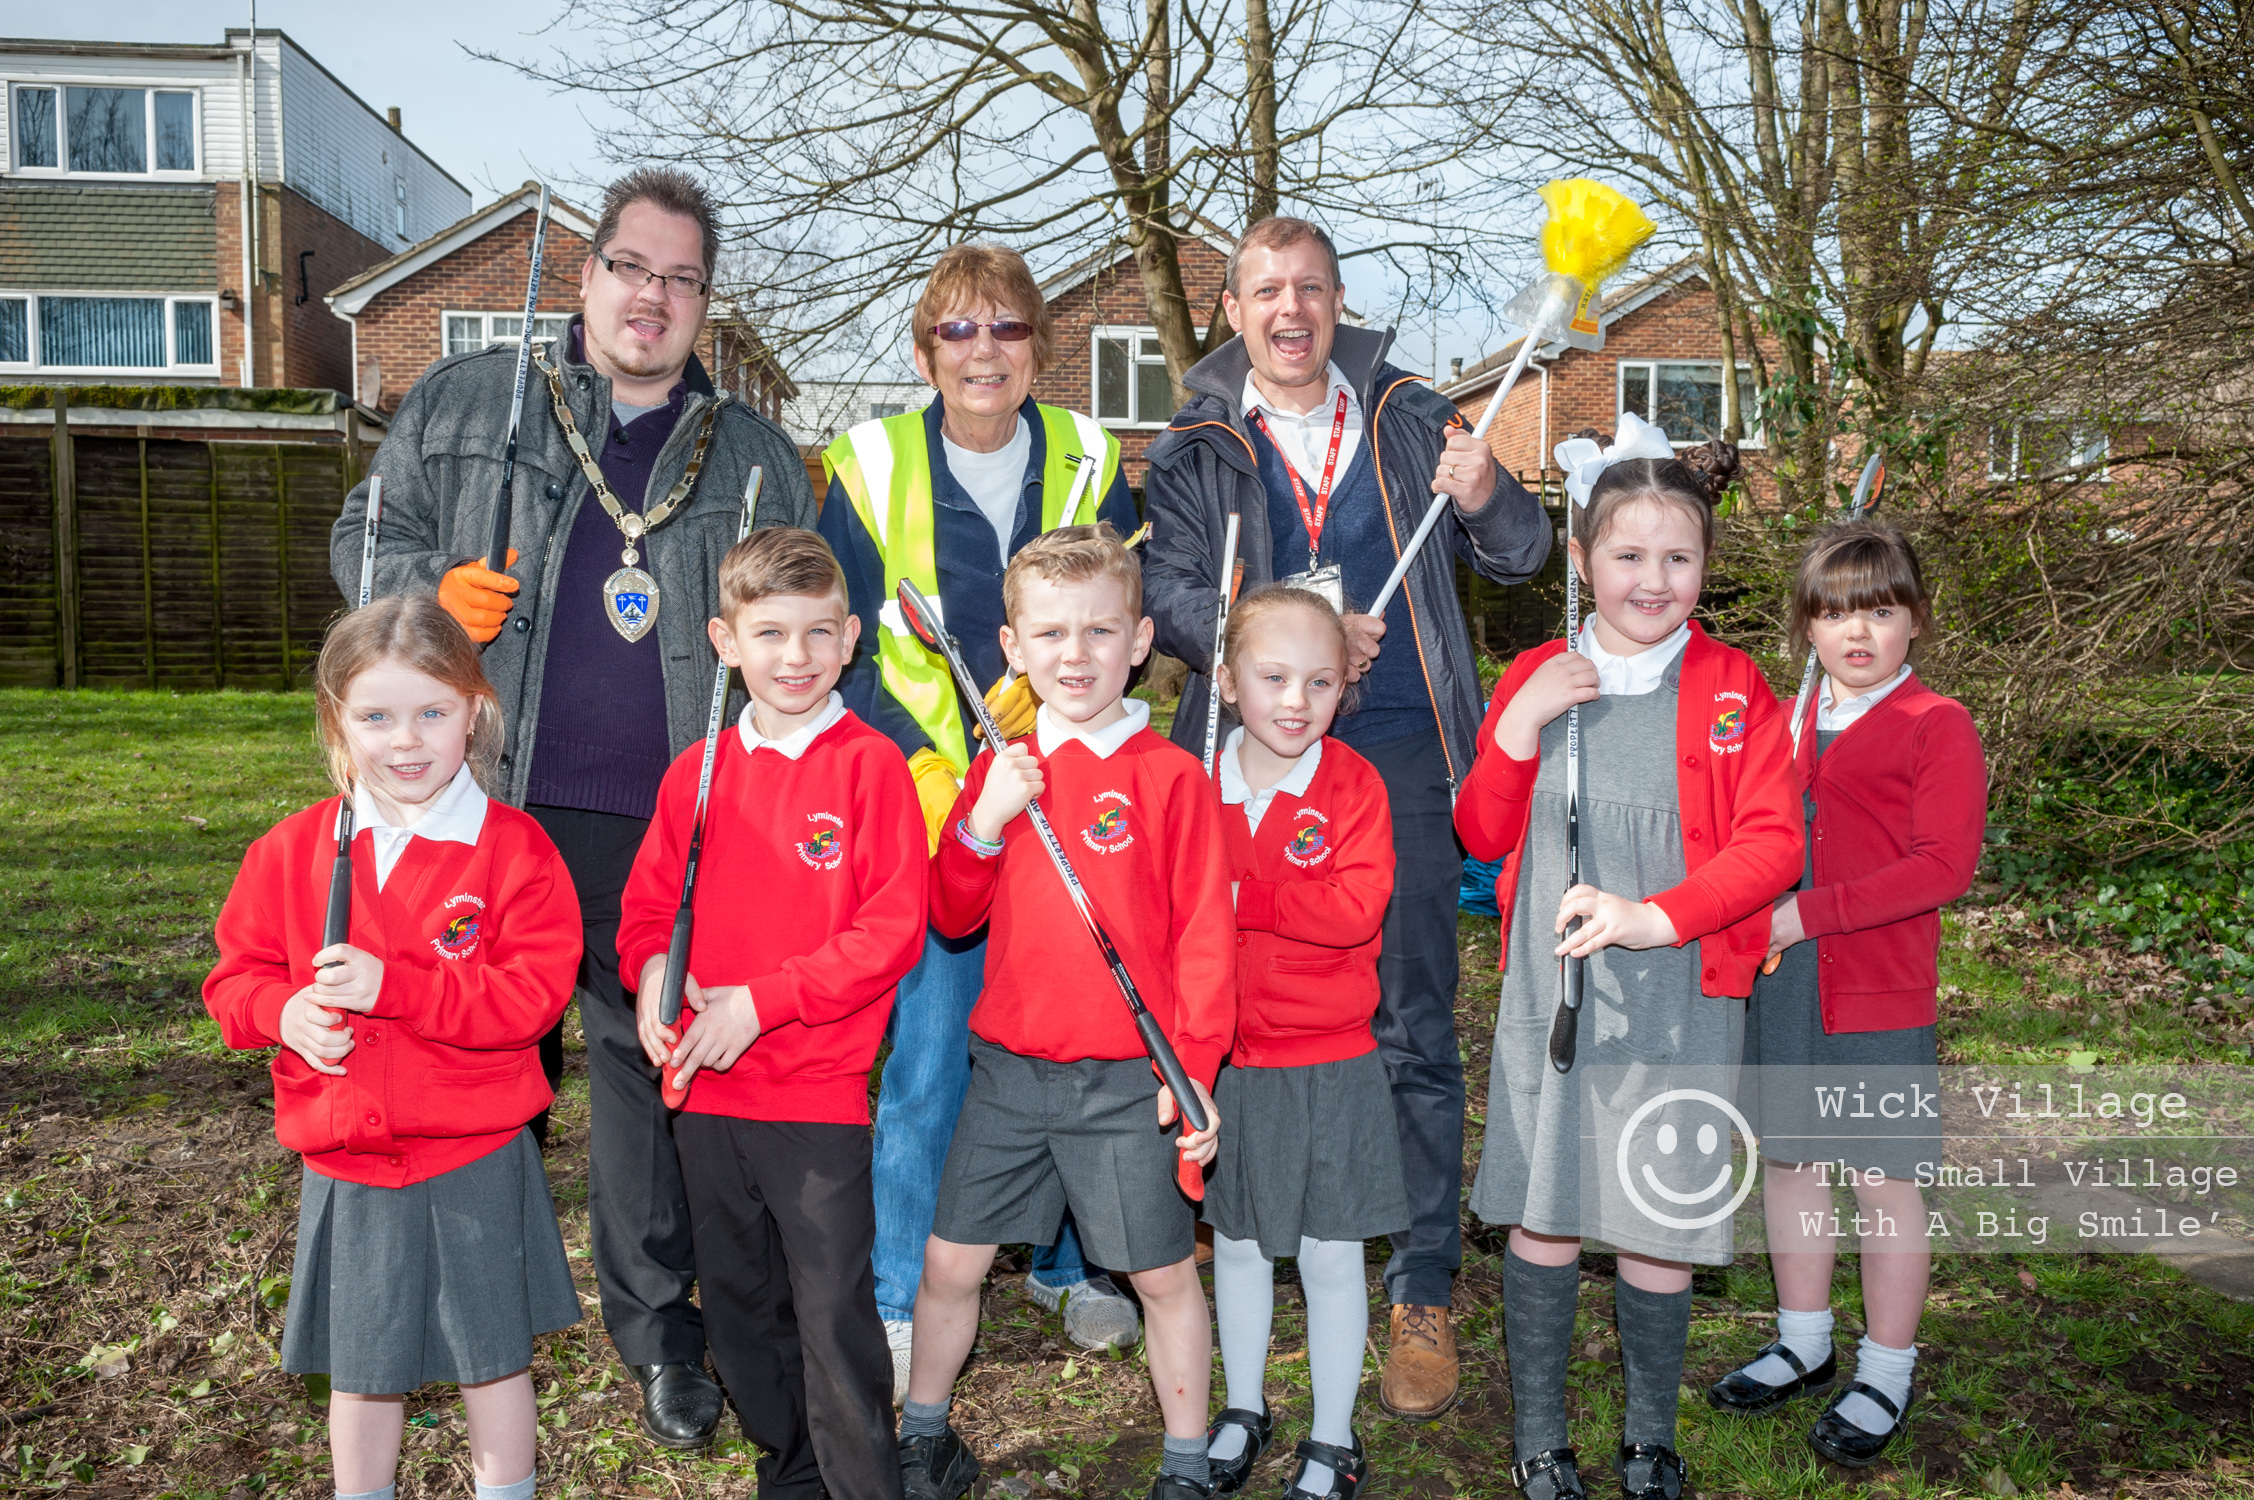 The Mayor of Littlehampton, Councillor Billy Blanchard-Cooper, joins local volunteers, children and staff from the Lyminster Primary School during the Great British Spring Clean Of Wick Village. Photo © Scott Ramsey / Wick Village Traders Association